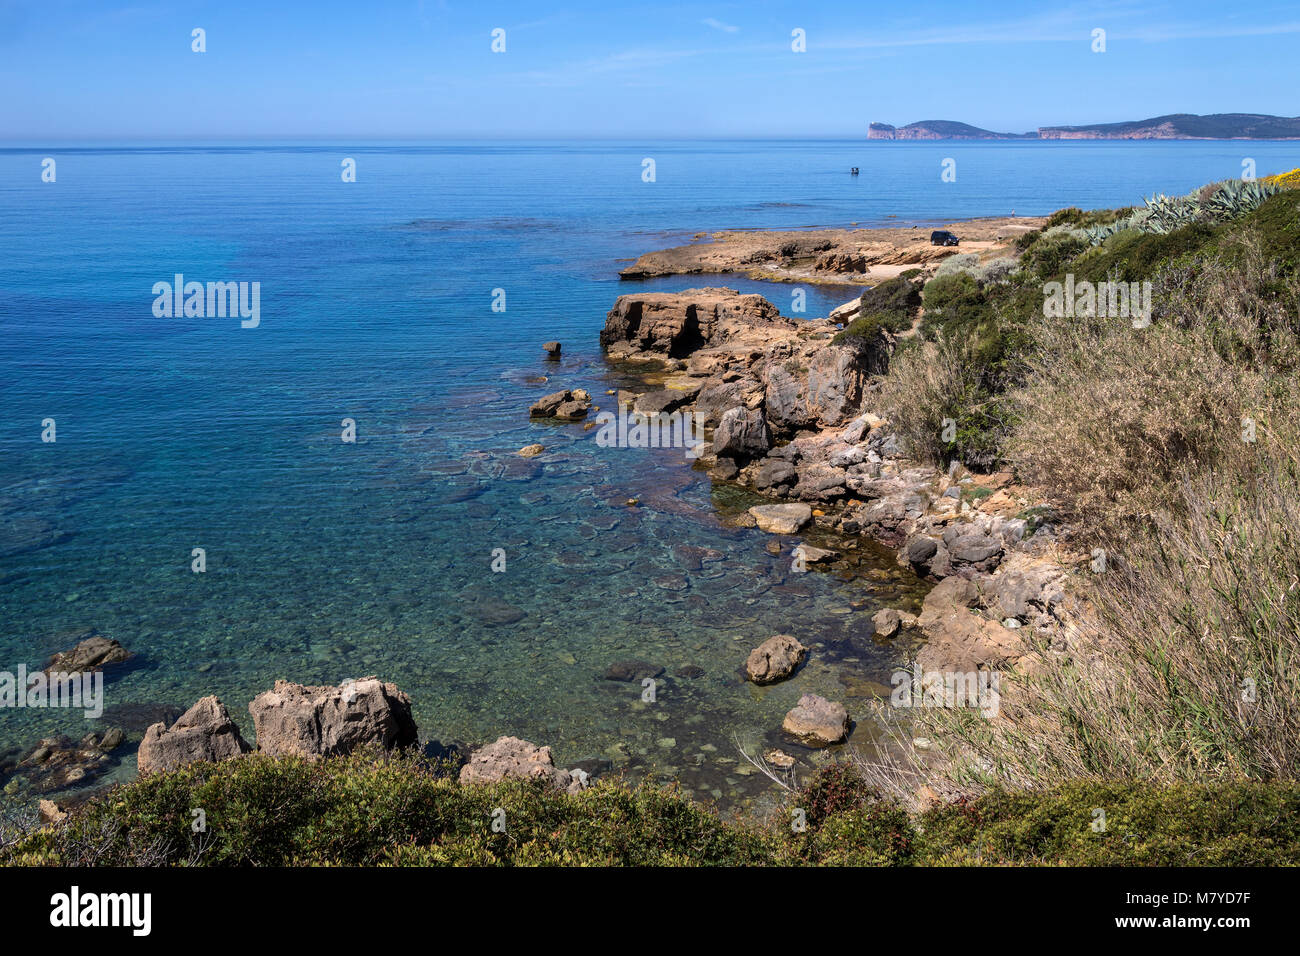 The scenic beauty of the rocky western coastline of Sardinia, Italy. - Stock Image